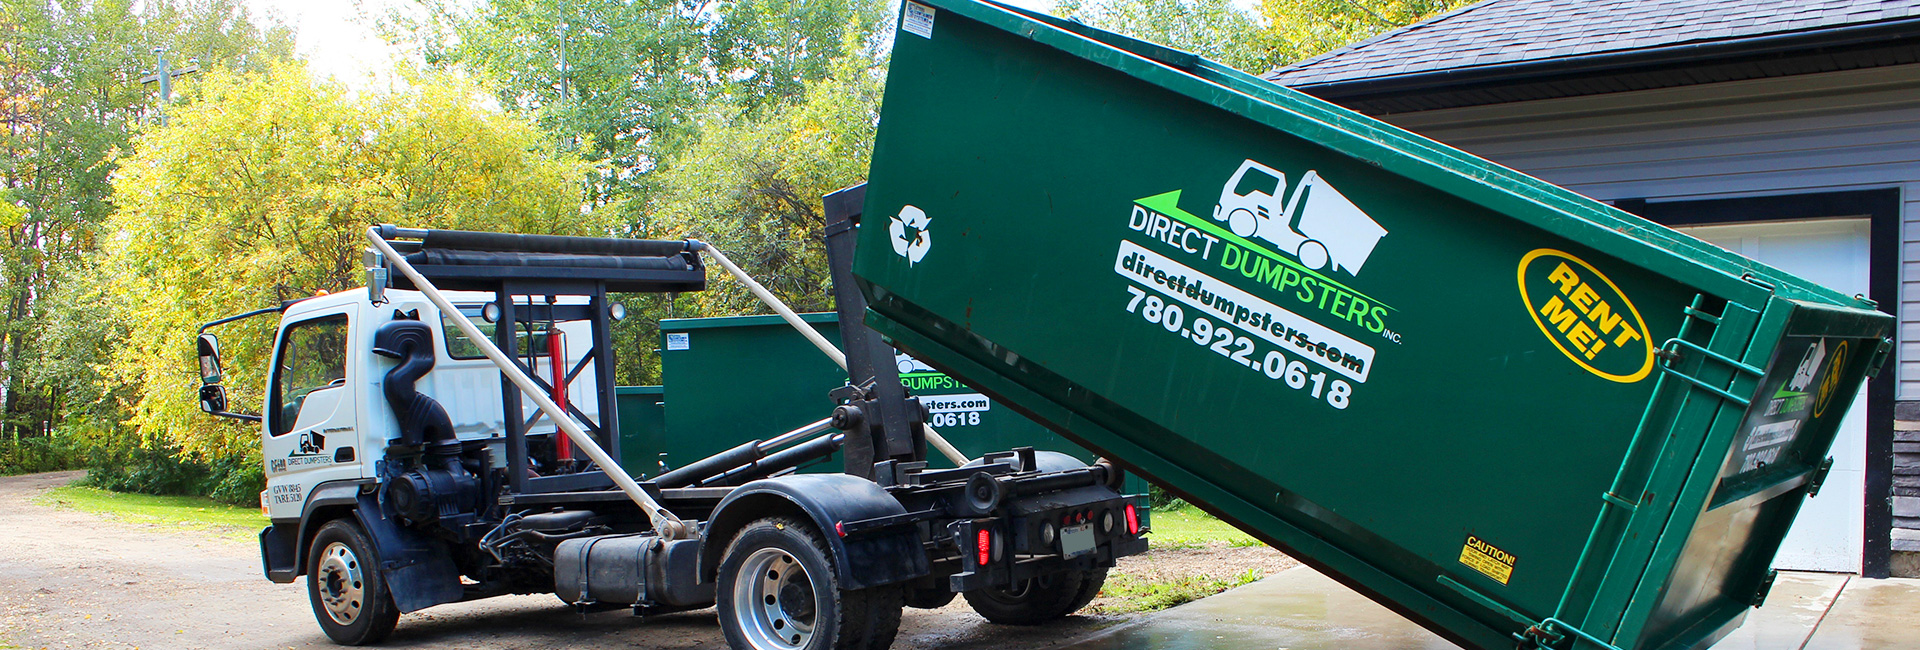 Direct Dumpsters offers different sizes of Garbage Bins